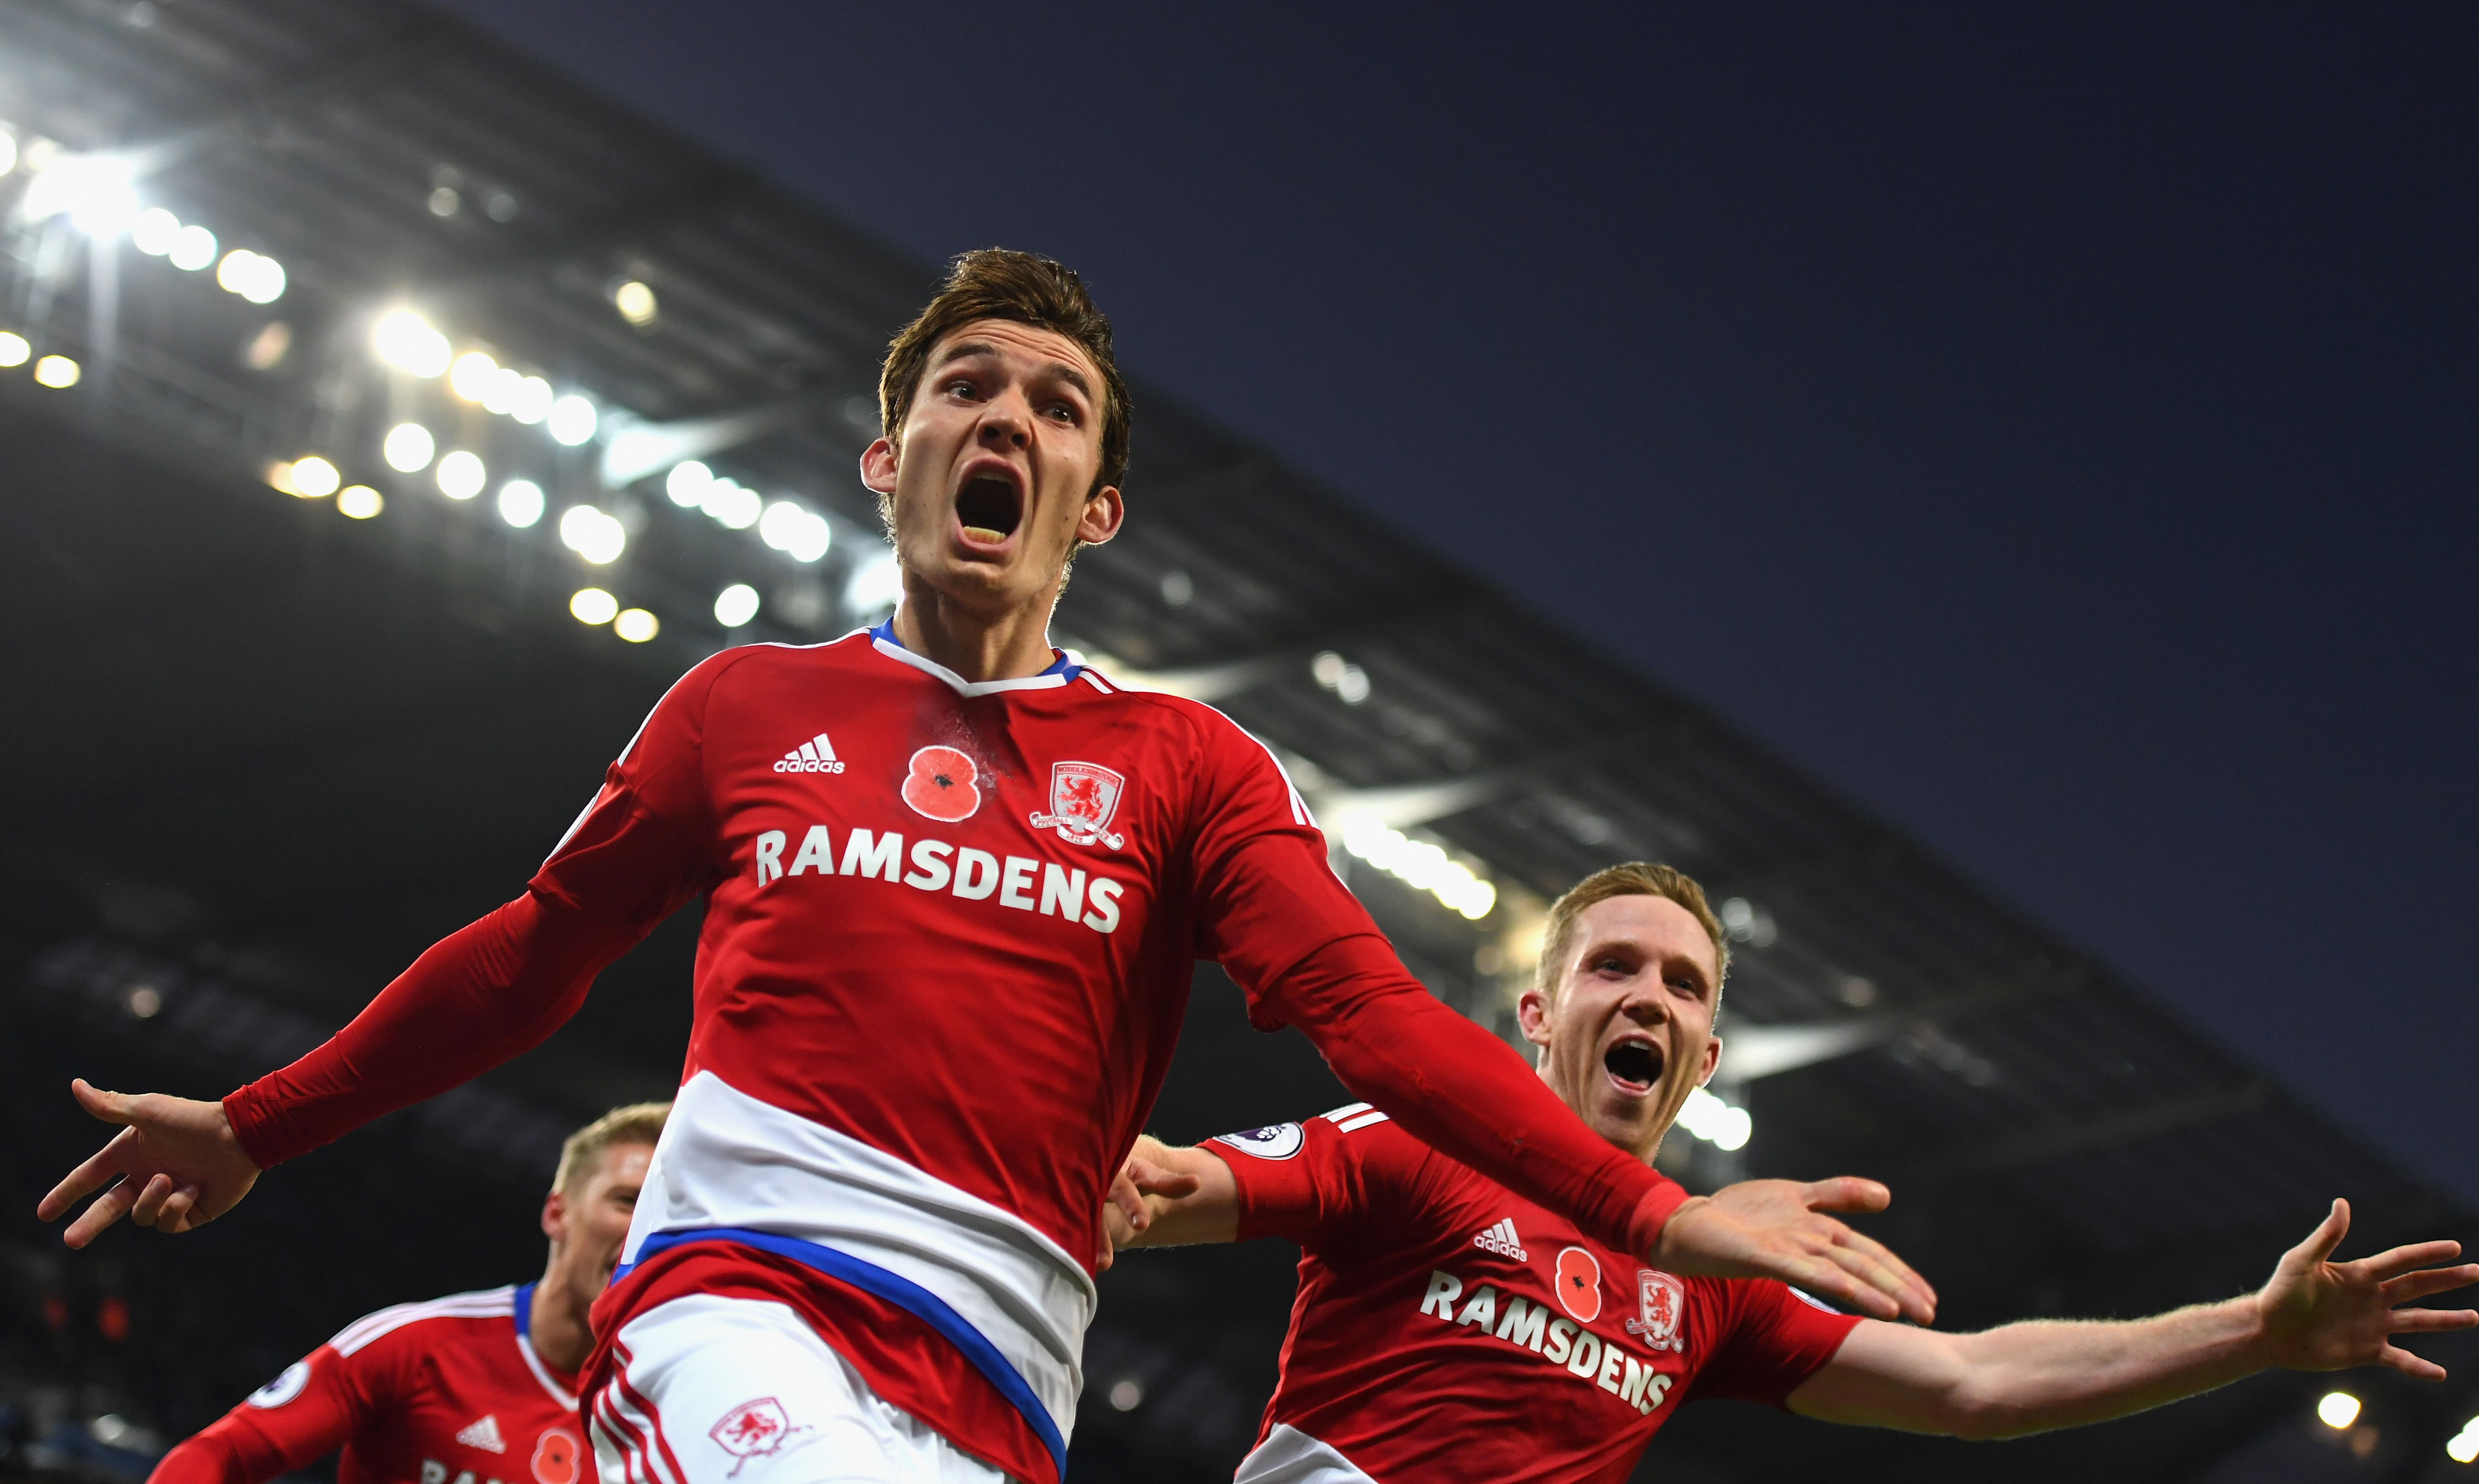 MANCHESTER, ENGLAND - NOVEMBER 05: Marten de Roon of Middlesbrough celebrates scoring his sides first goal during the Premier League match between Manchester City and Middlesbrough at Etihad Stadium on November 5, 2016 in Manchester, England. (Photo by Laurence Griffiths/Getty Images)